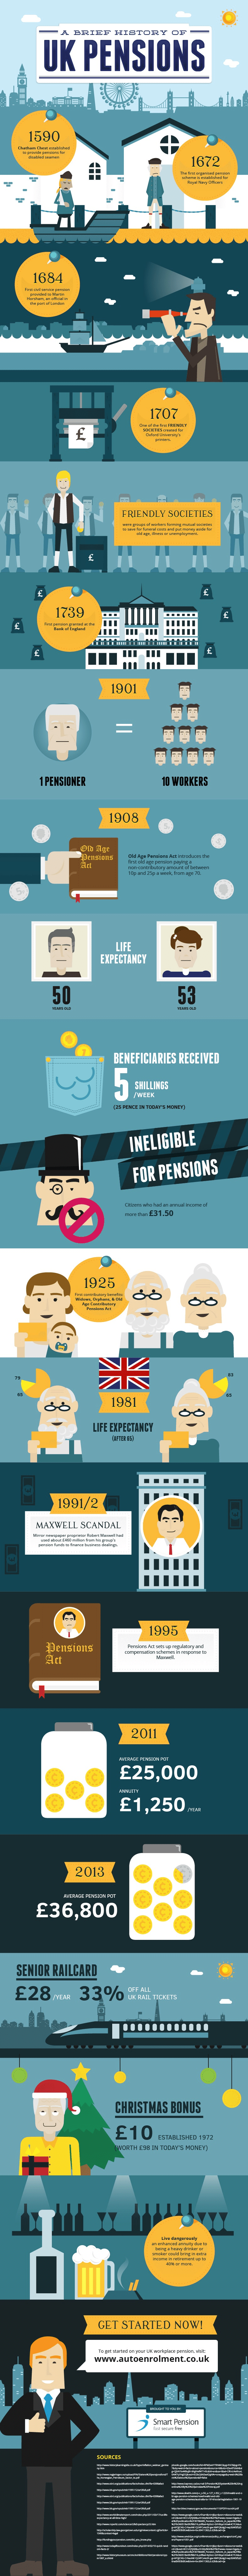 A Brief History Of UK Pensions Infographic